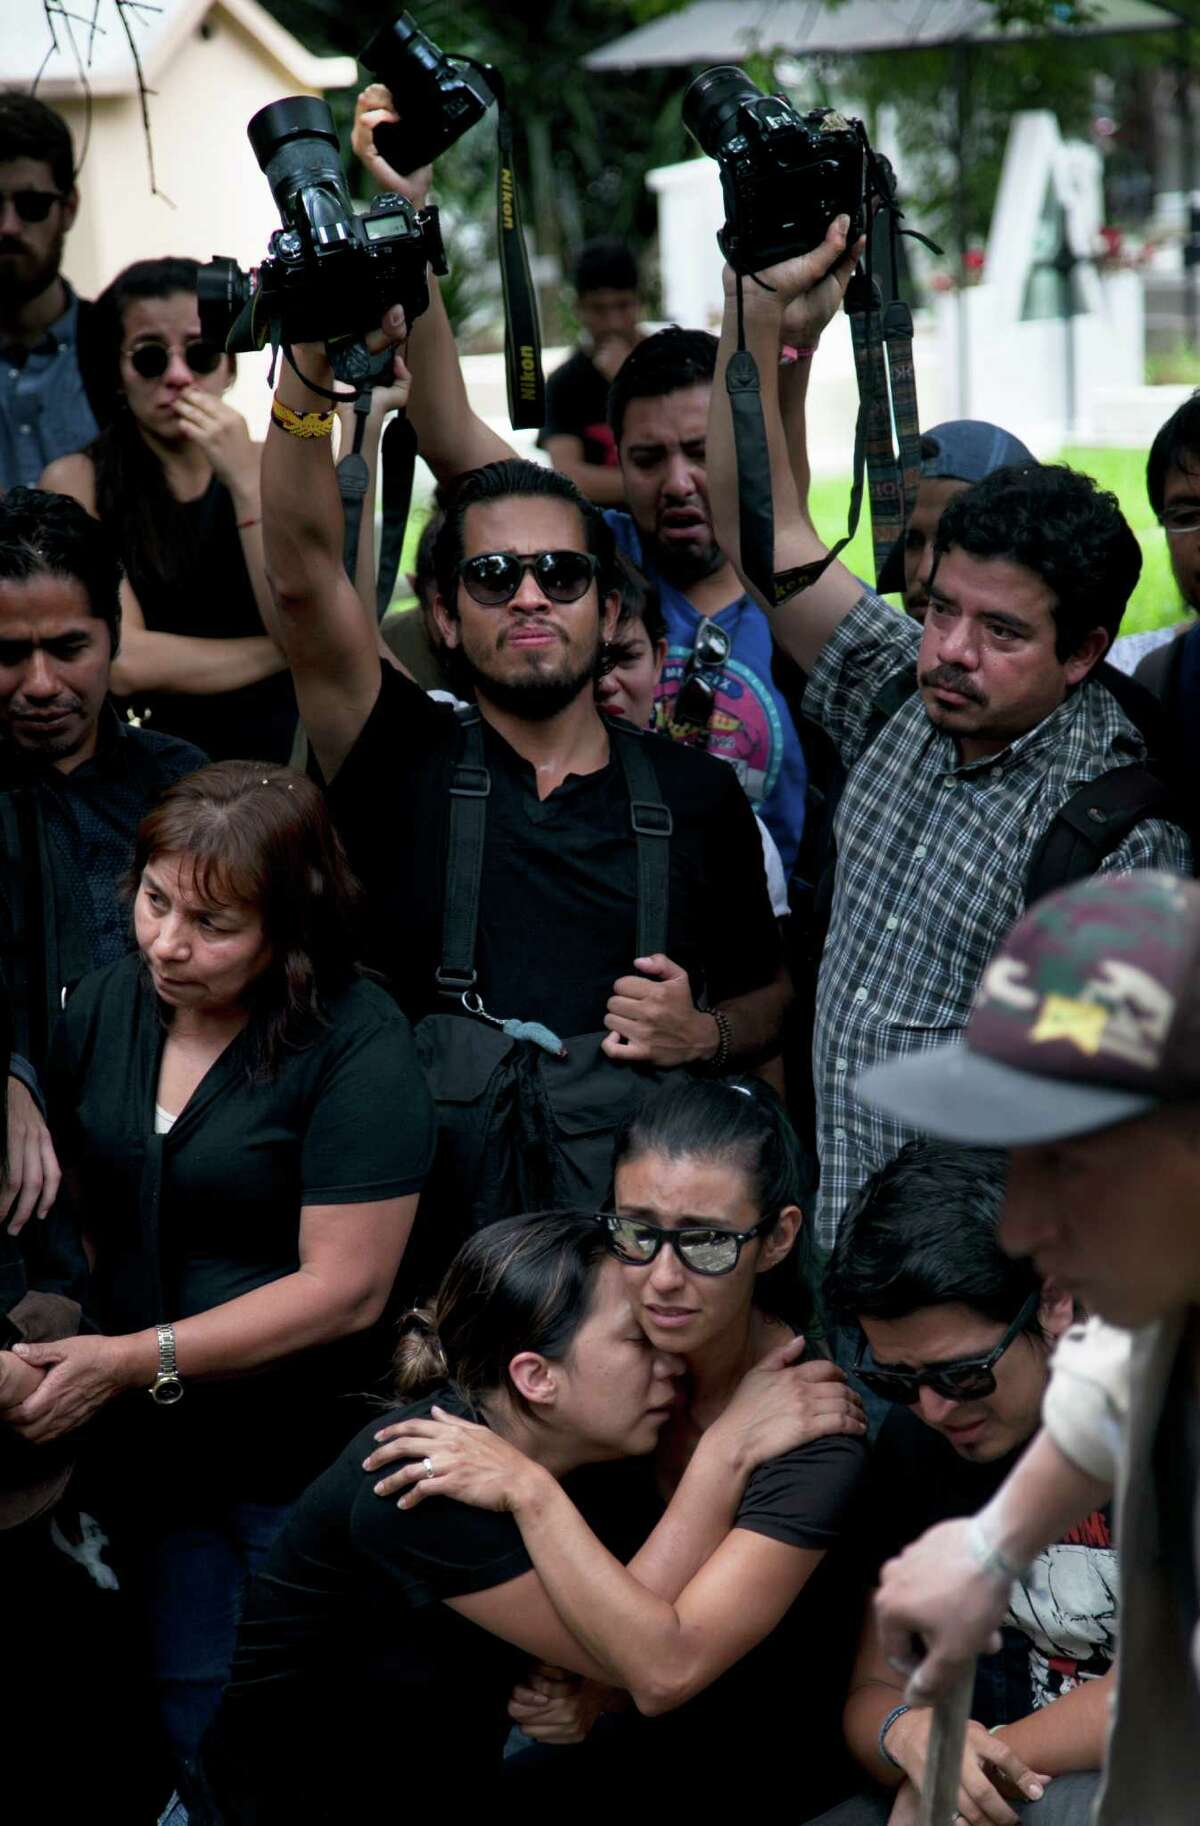 Family and friends mourn during the funeral of murdered photojournalist Ruben Espinosa in Mexico City, Monday, Aug. 3, 2015. With an investigation barely underway, Mexican journalist protection groups are already expressing fears that authorities won't consider Espinosa's brutal killing as being related to his work - even though he fled the state he covered fearing for his safety. Espinosa, 31, worked for the investigative magazine Proceso and other media in Veracruz state. (AP Photo/Marco Ugarte)